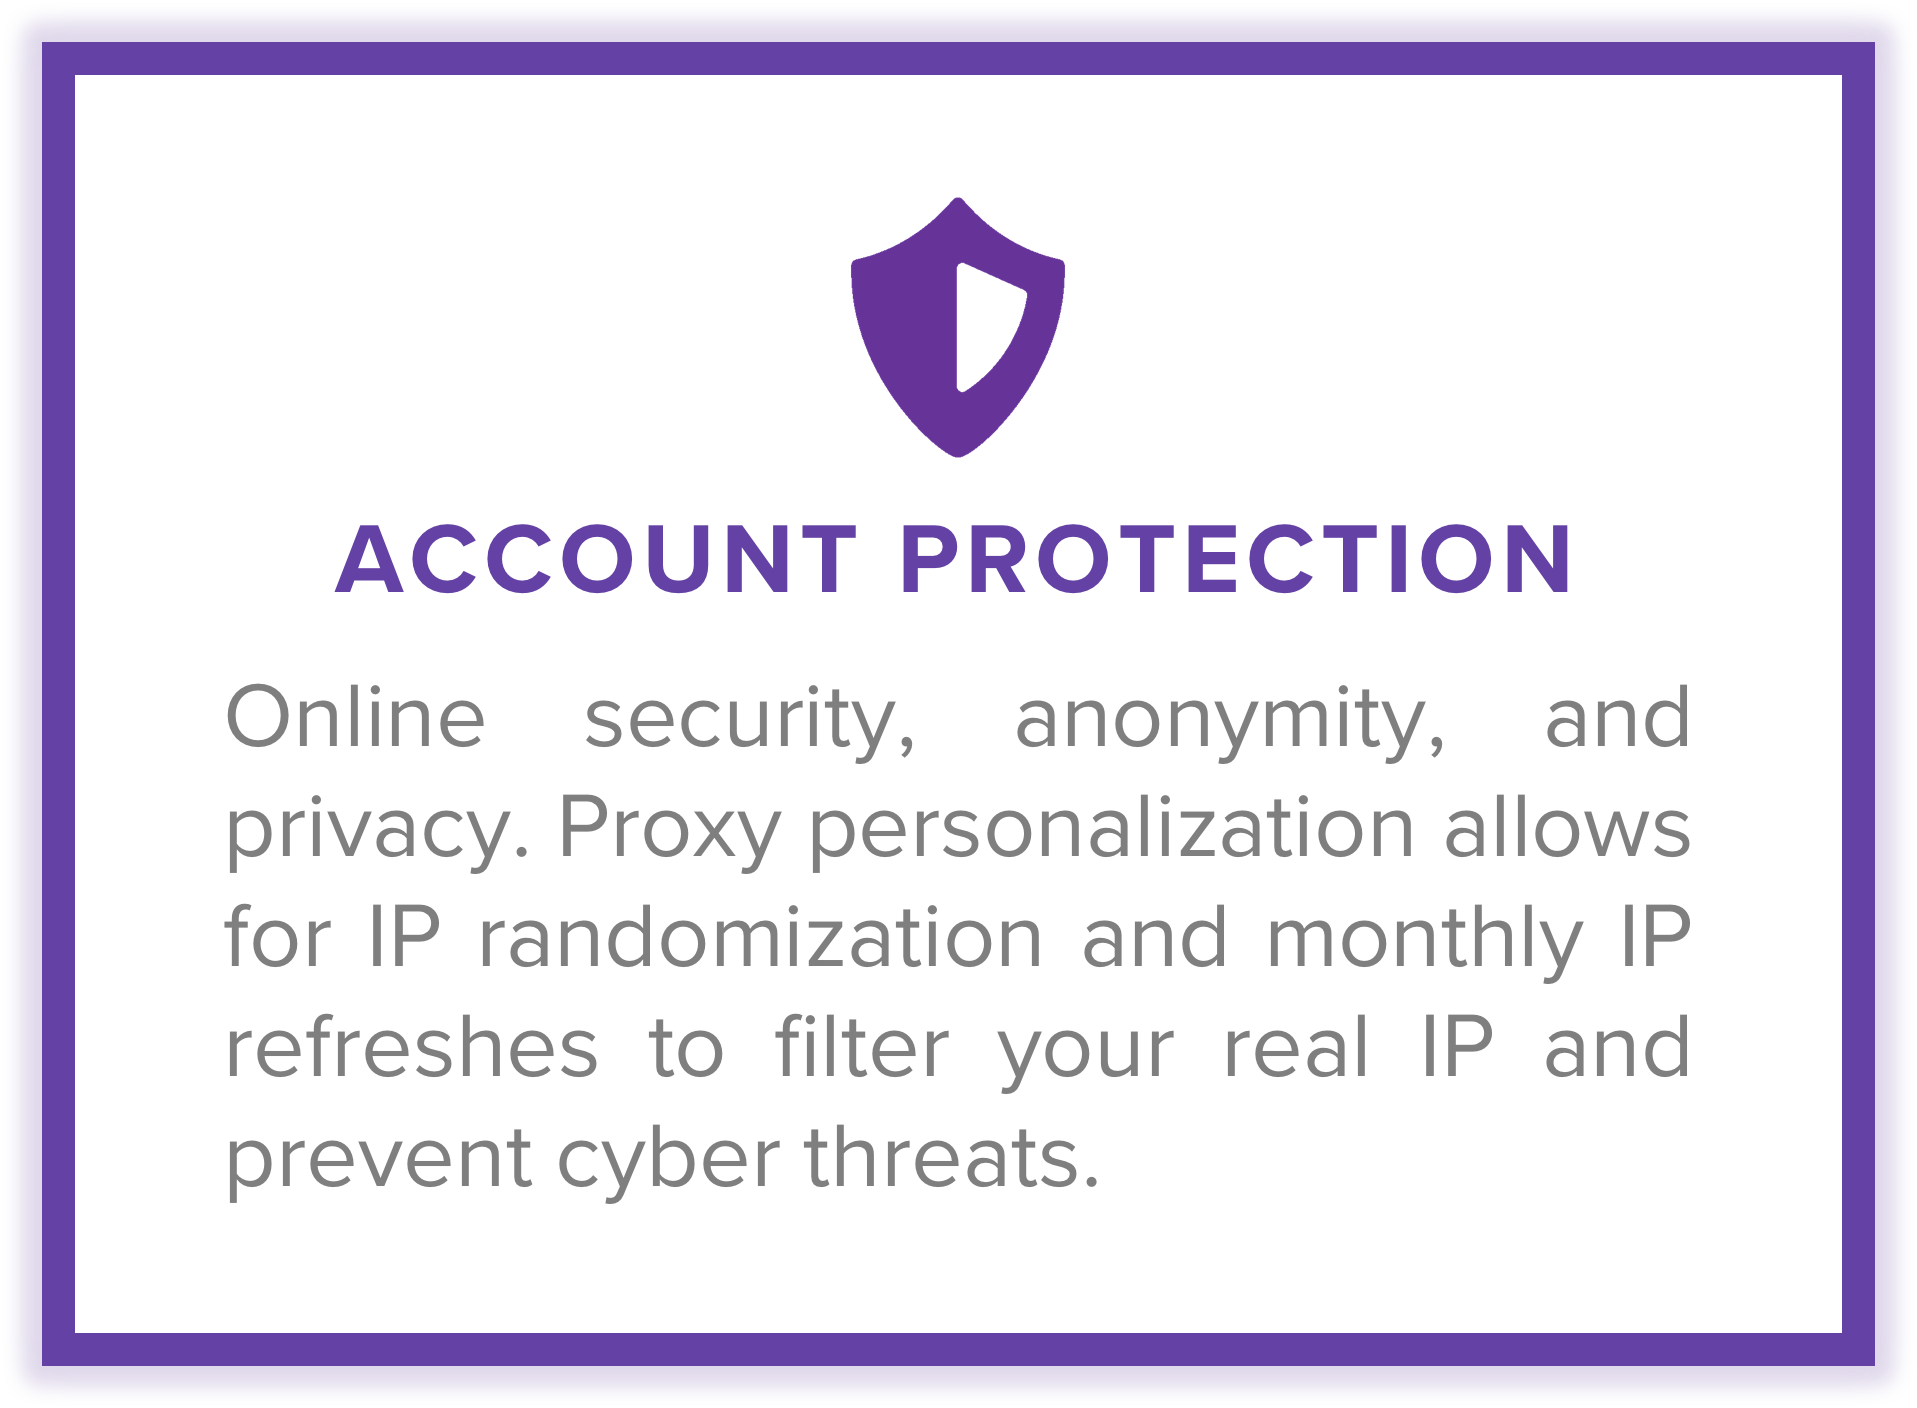 Account Protection.png